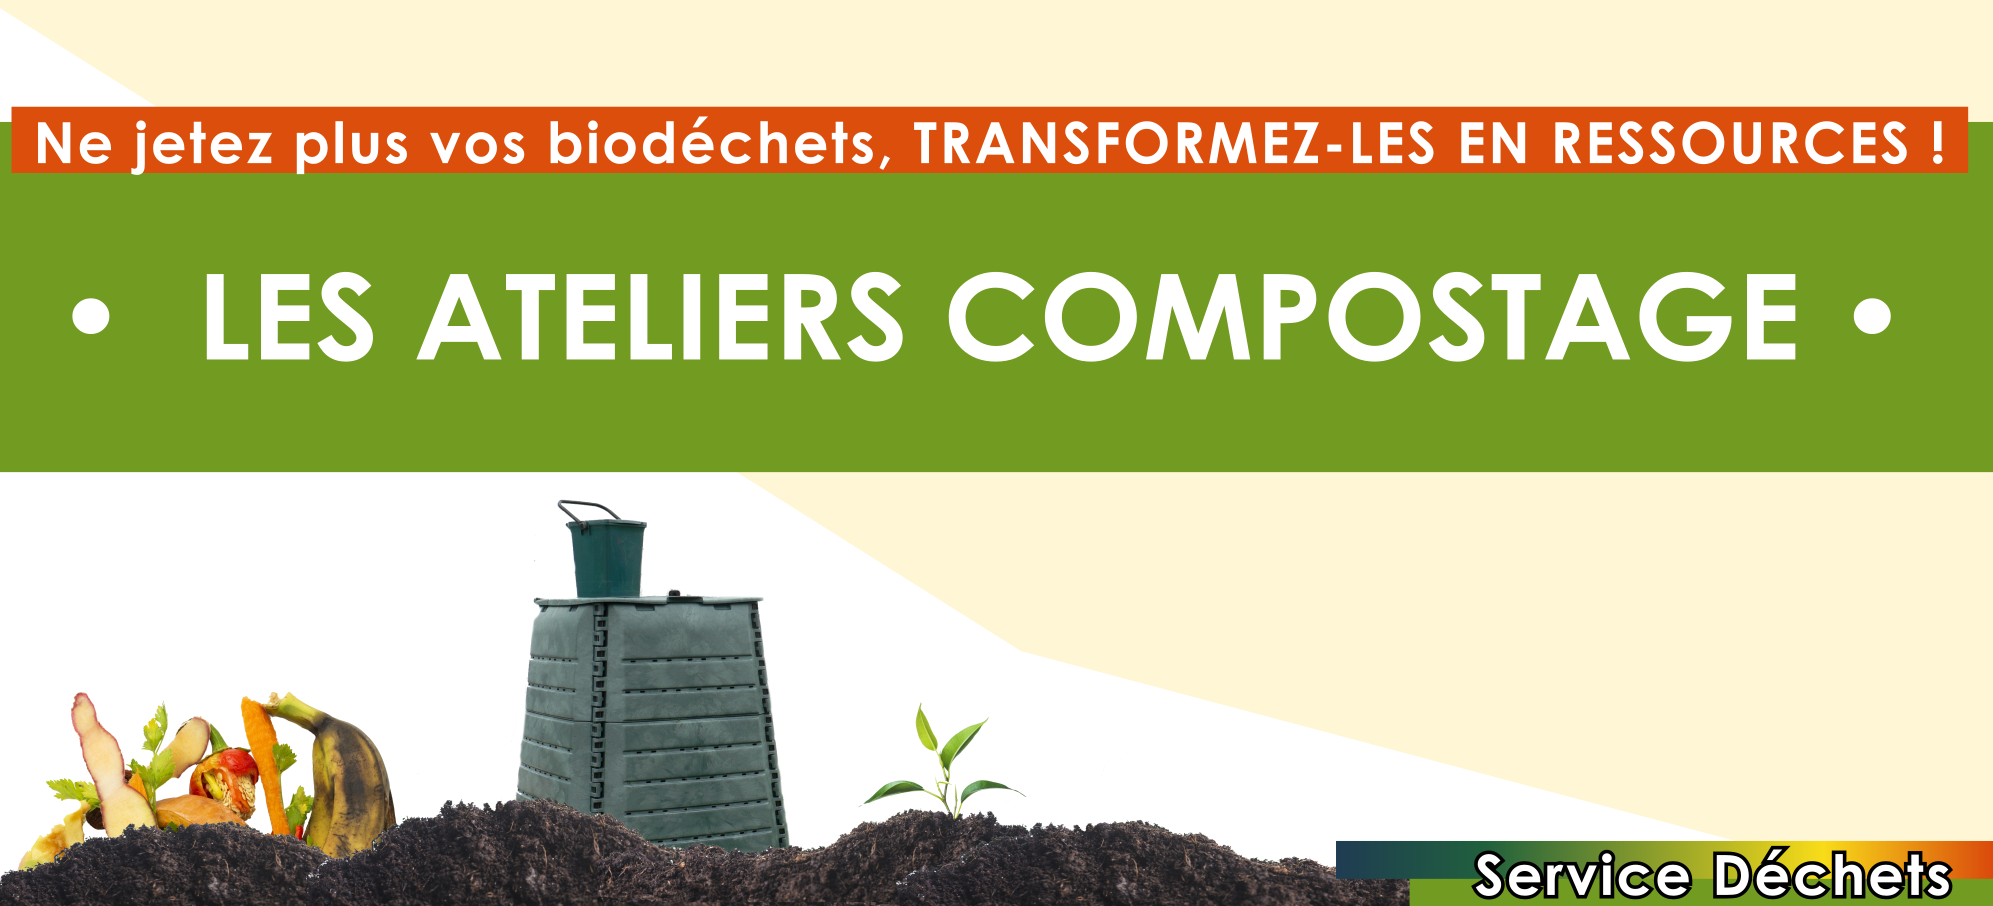 Ateliers compostage